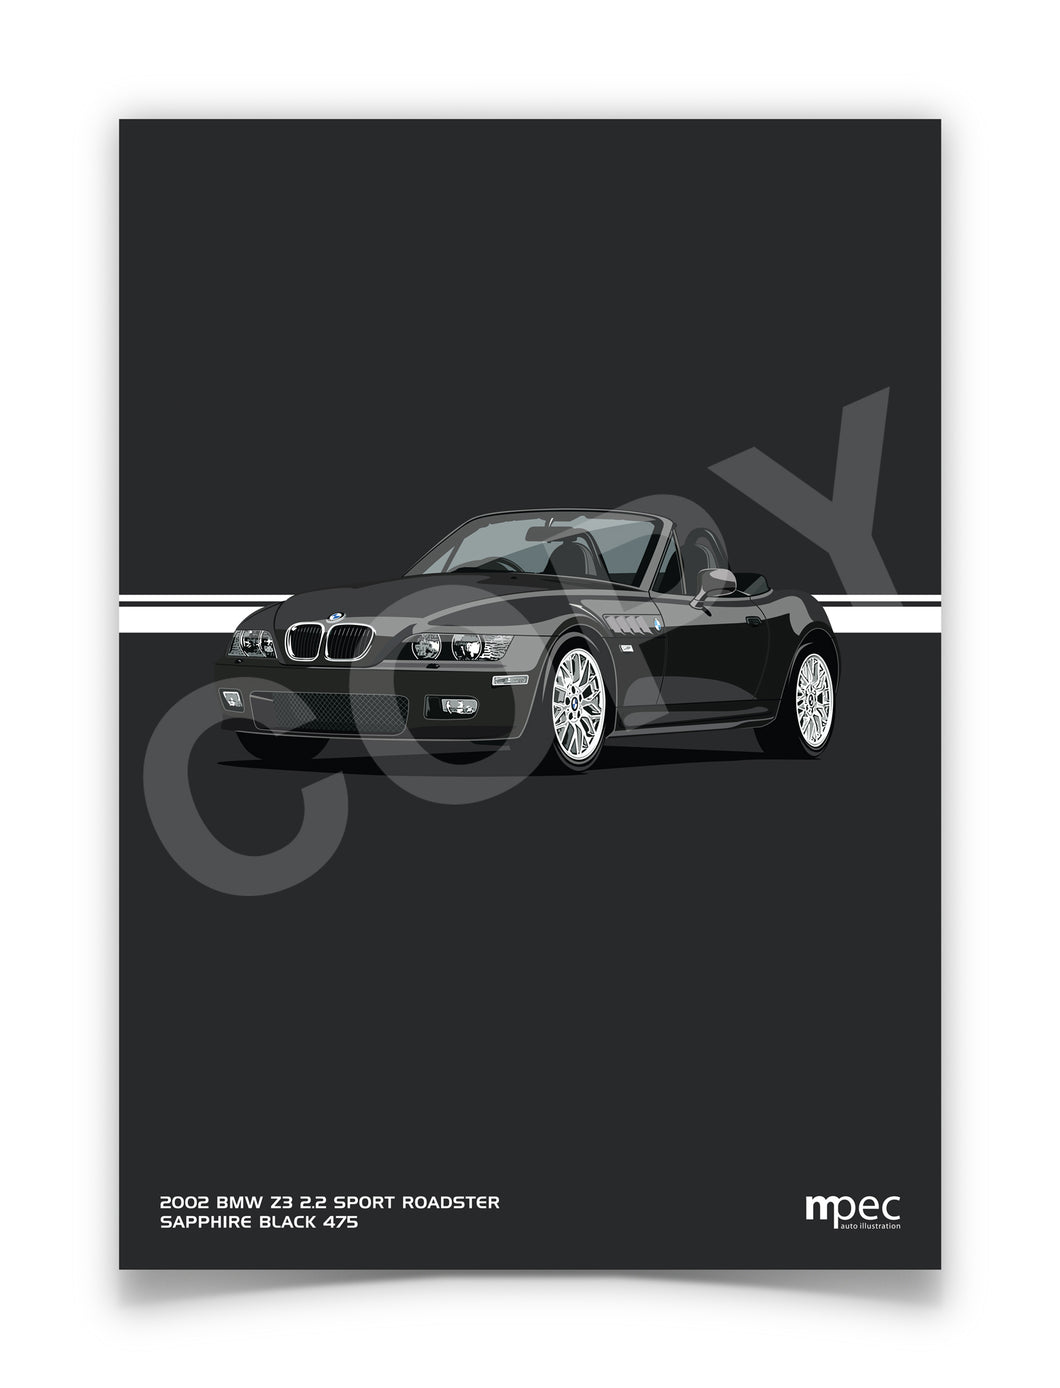 Illustration 2002 BMW Z3 2.2 Roadster Sapphire Black 475